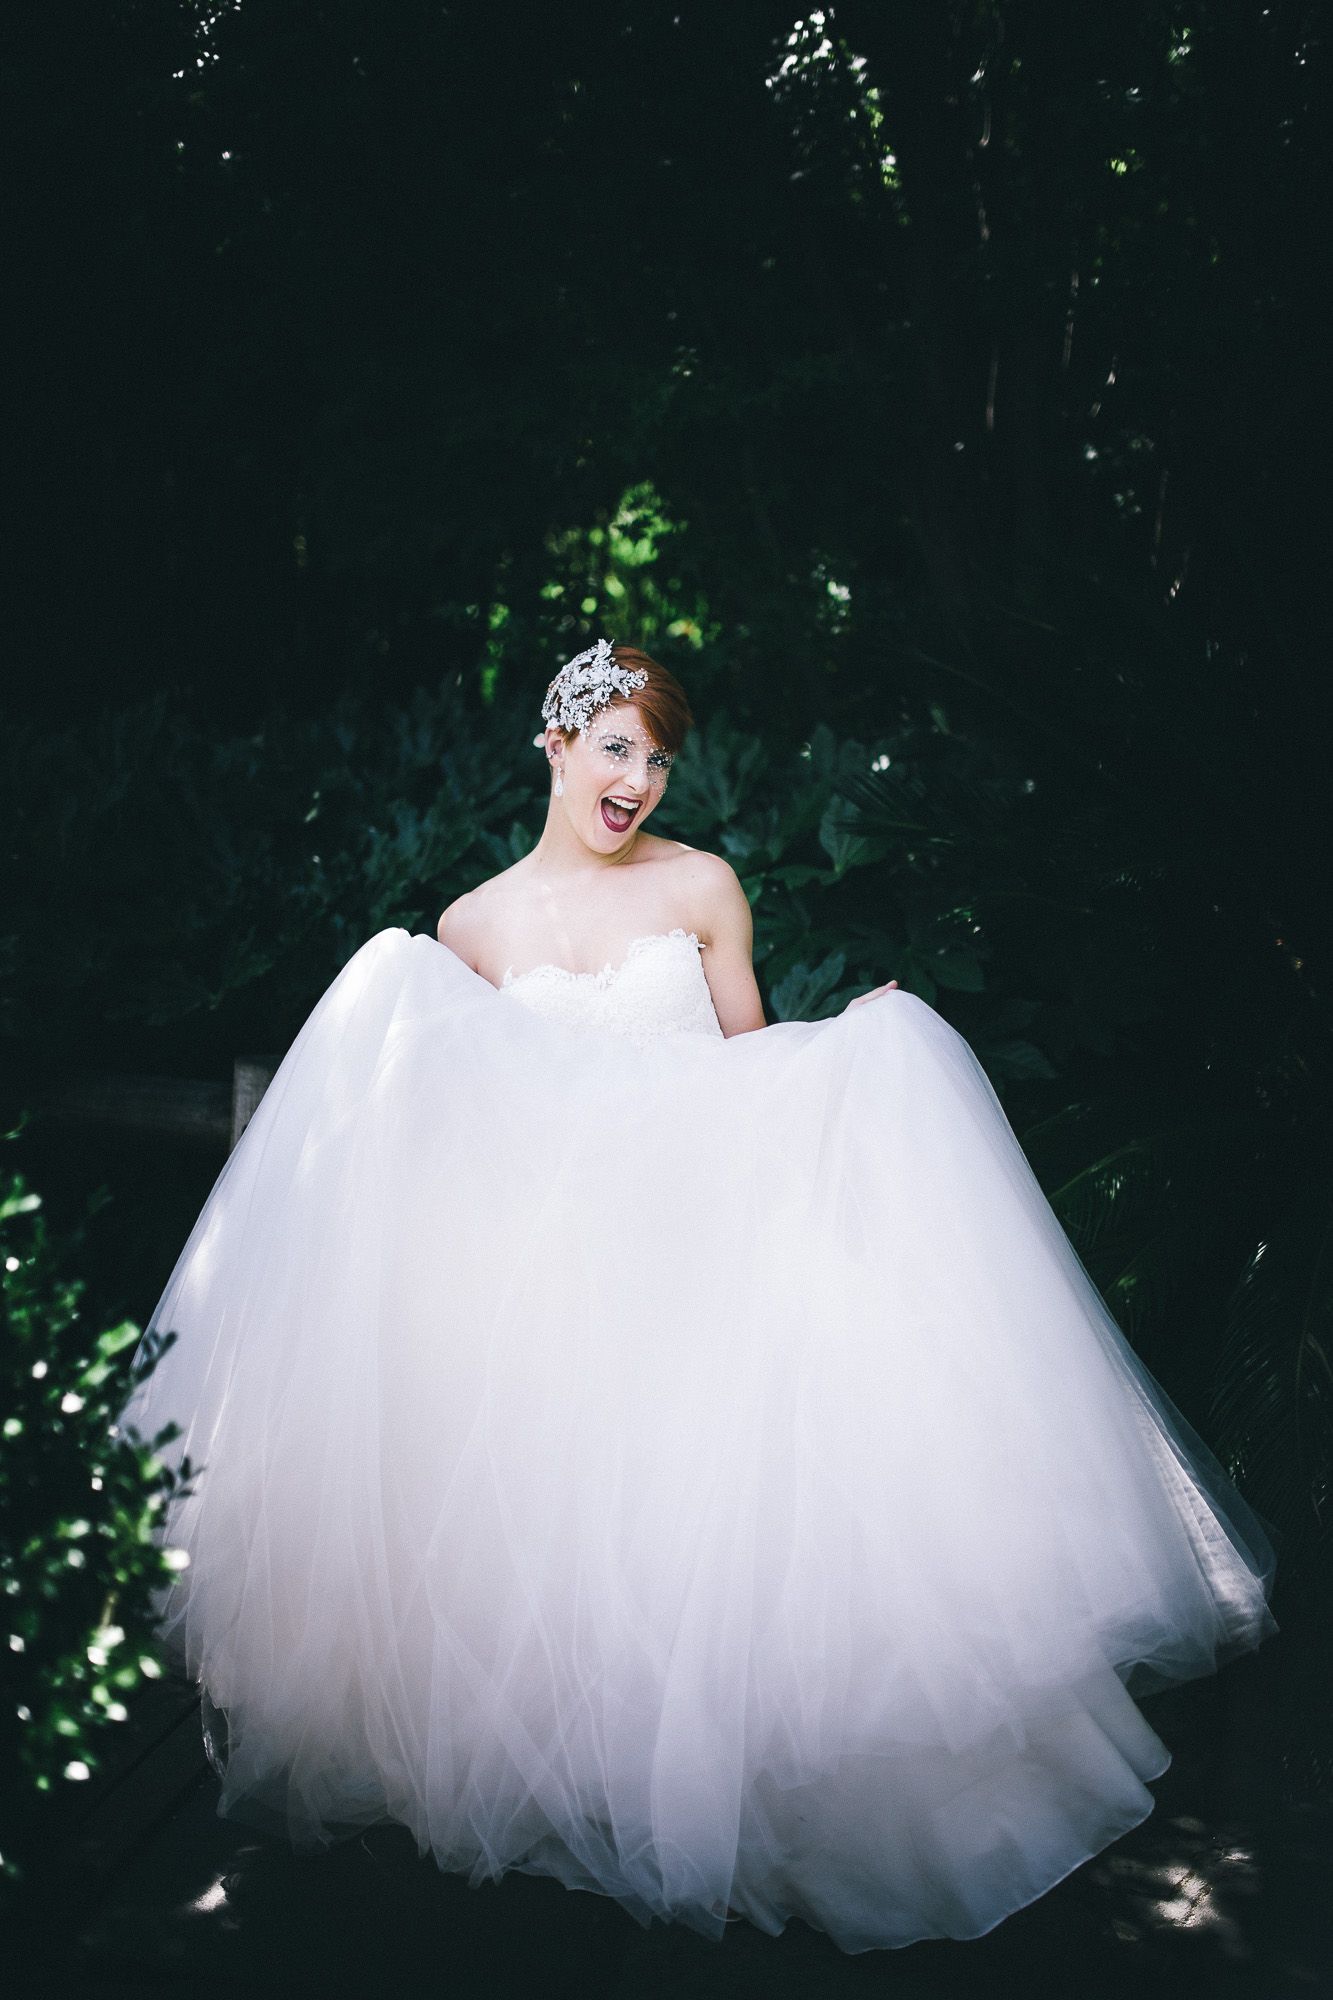 Wedding photography: easy-going bride in gorgeous gown in park